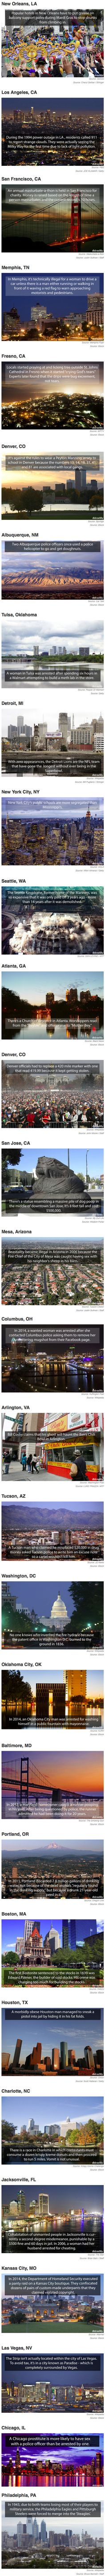 Here are some weird and bizarre, yet true, facts about some famous US cities.